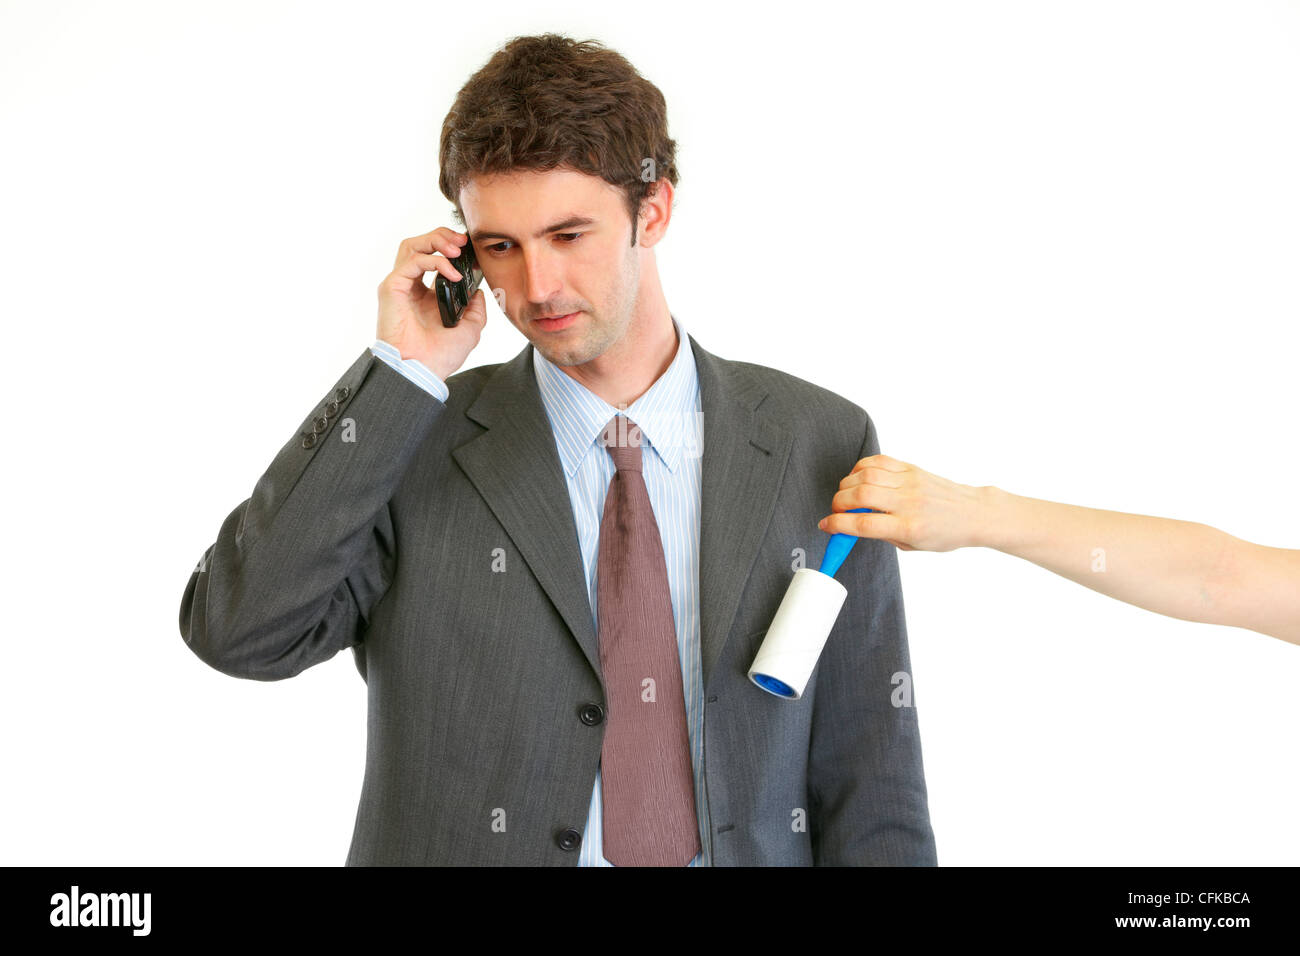 Secretary cleaning chiefs suit while he talking on phone isolated on white - Stock Image